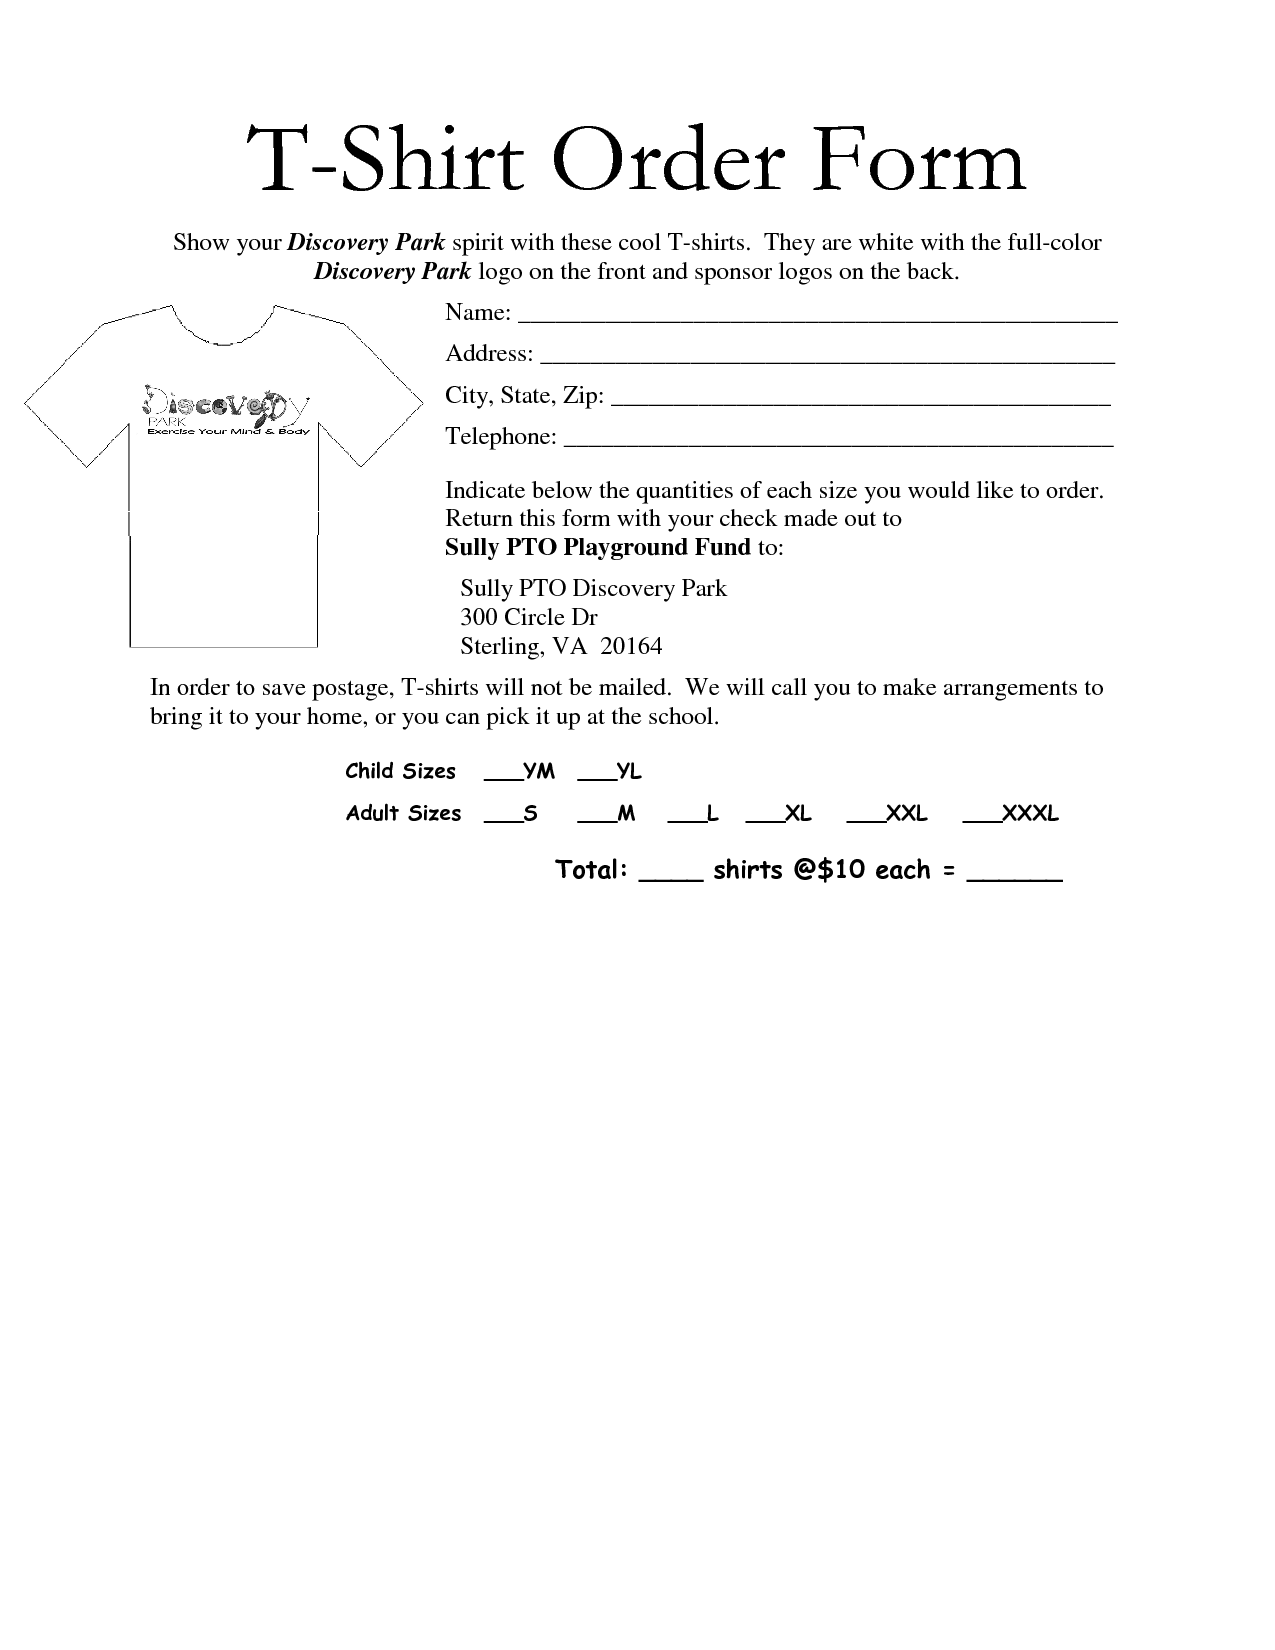 35 Awesome t shirt order form template free images | Projects to